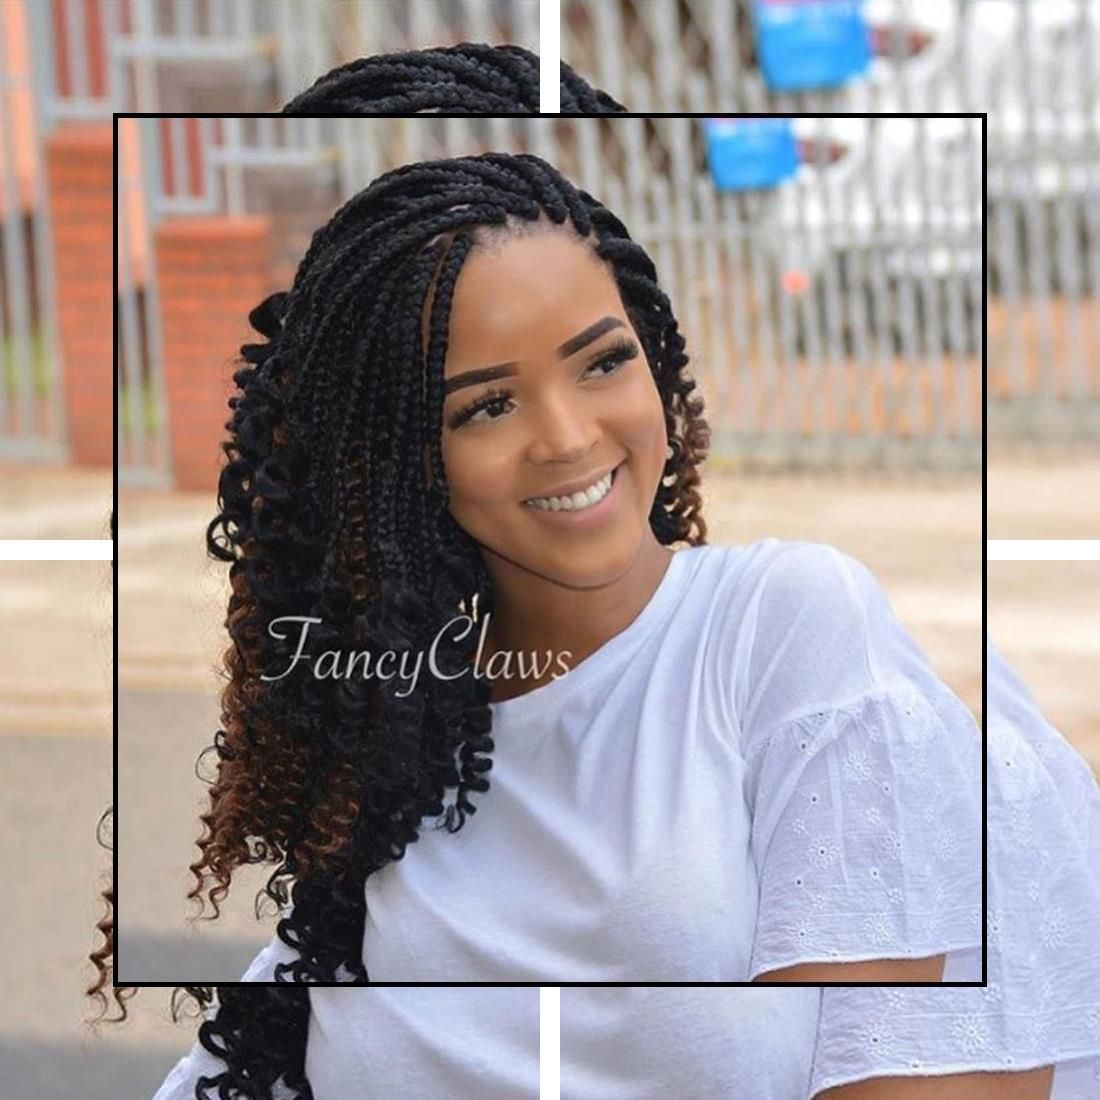 Prom Hairstyles Updos Long Hairstyles 2016 Fall Easy Updos For Work In 2020 Braids With Curls Braided Hairstyles African Braids Hairstyles